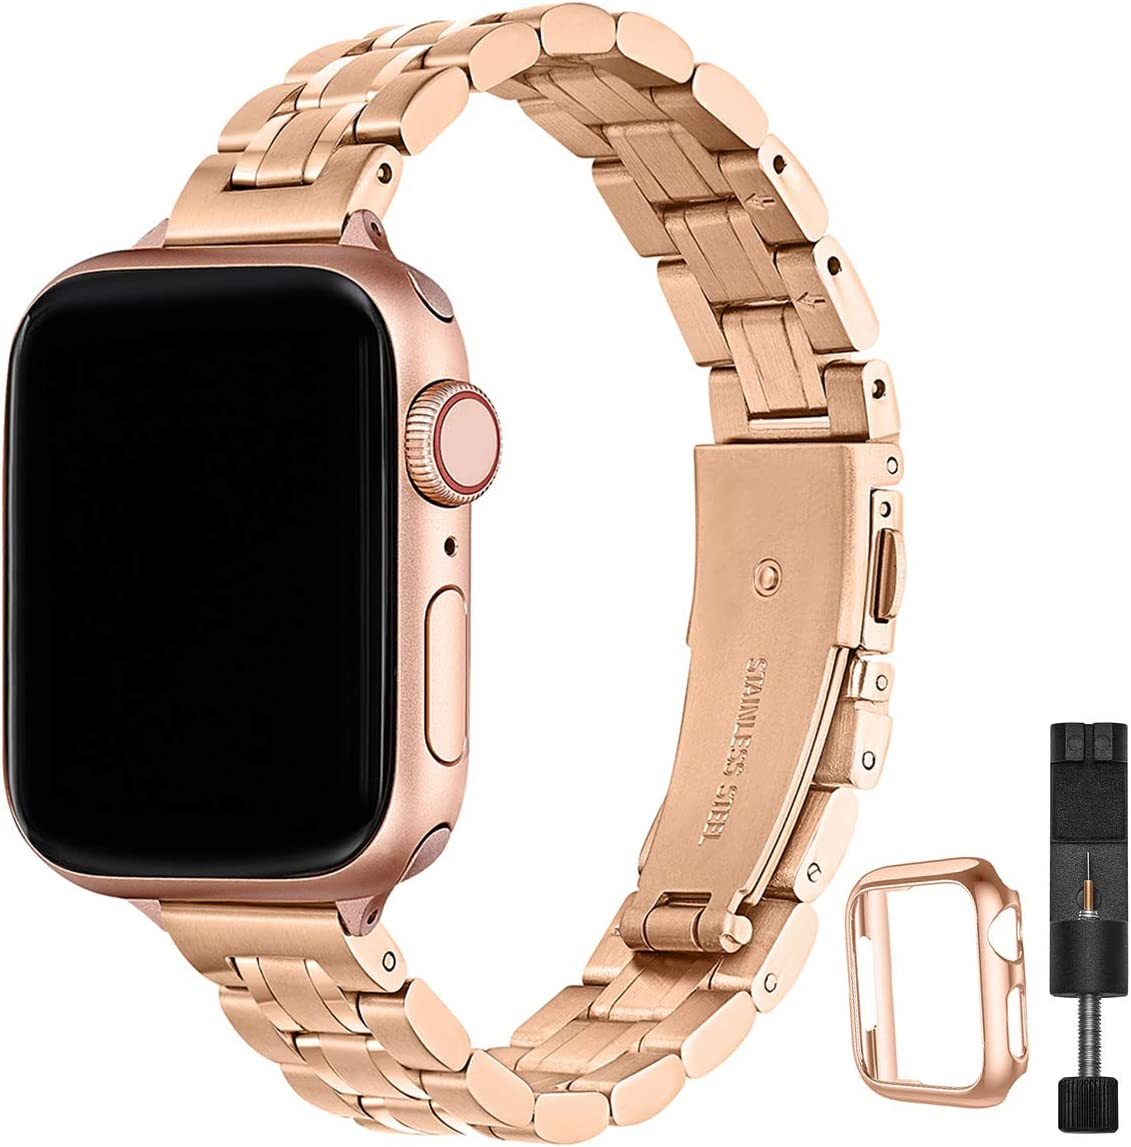 STIROLL Thin Replacement Band Compatible for Apple Watch 42mm 44mm, Stainless Steel Metal Wristband Women Men for iWatch SE Series 6/5/4/3/2/1 (Rose Gold, 42mm/44mm)